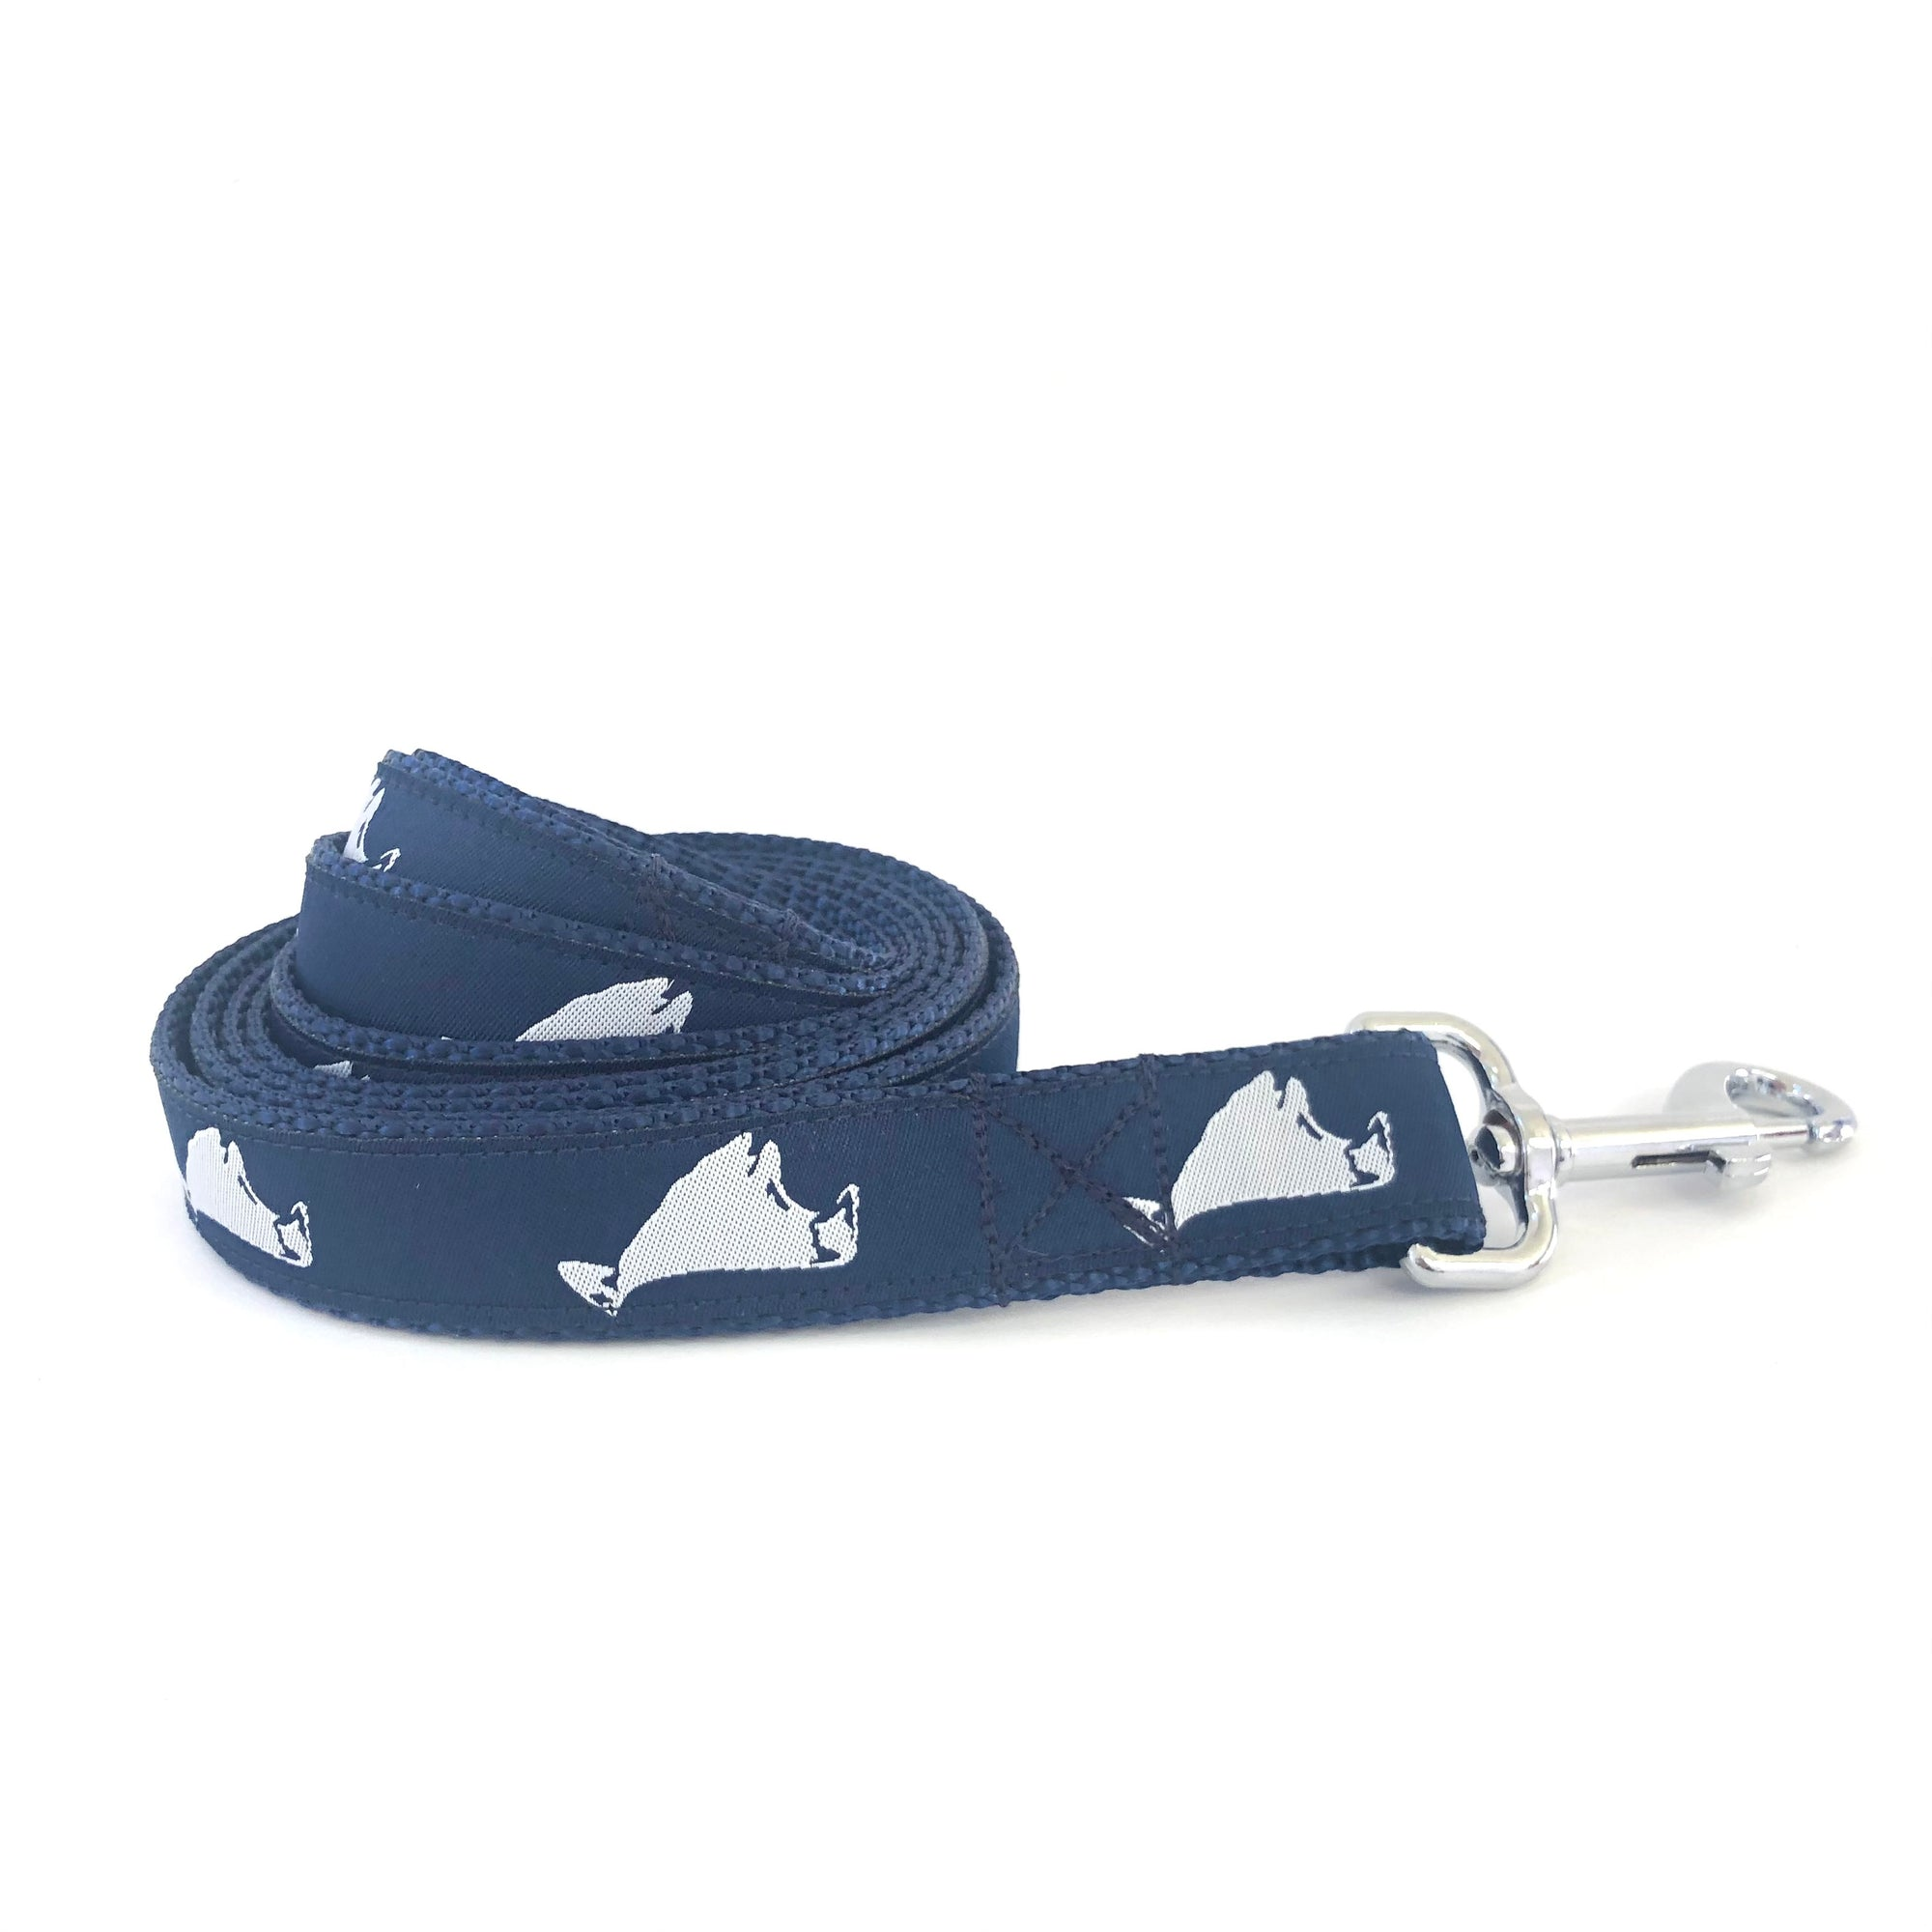 Martha's Vineyard Dog Leash